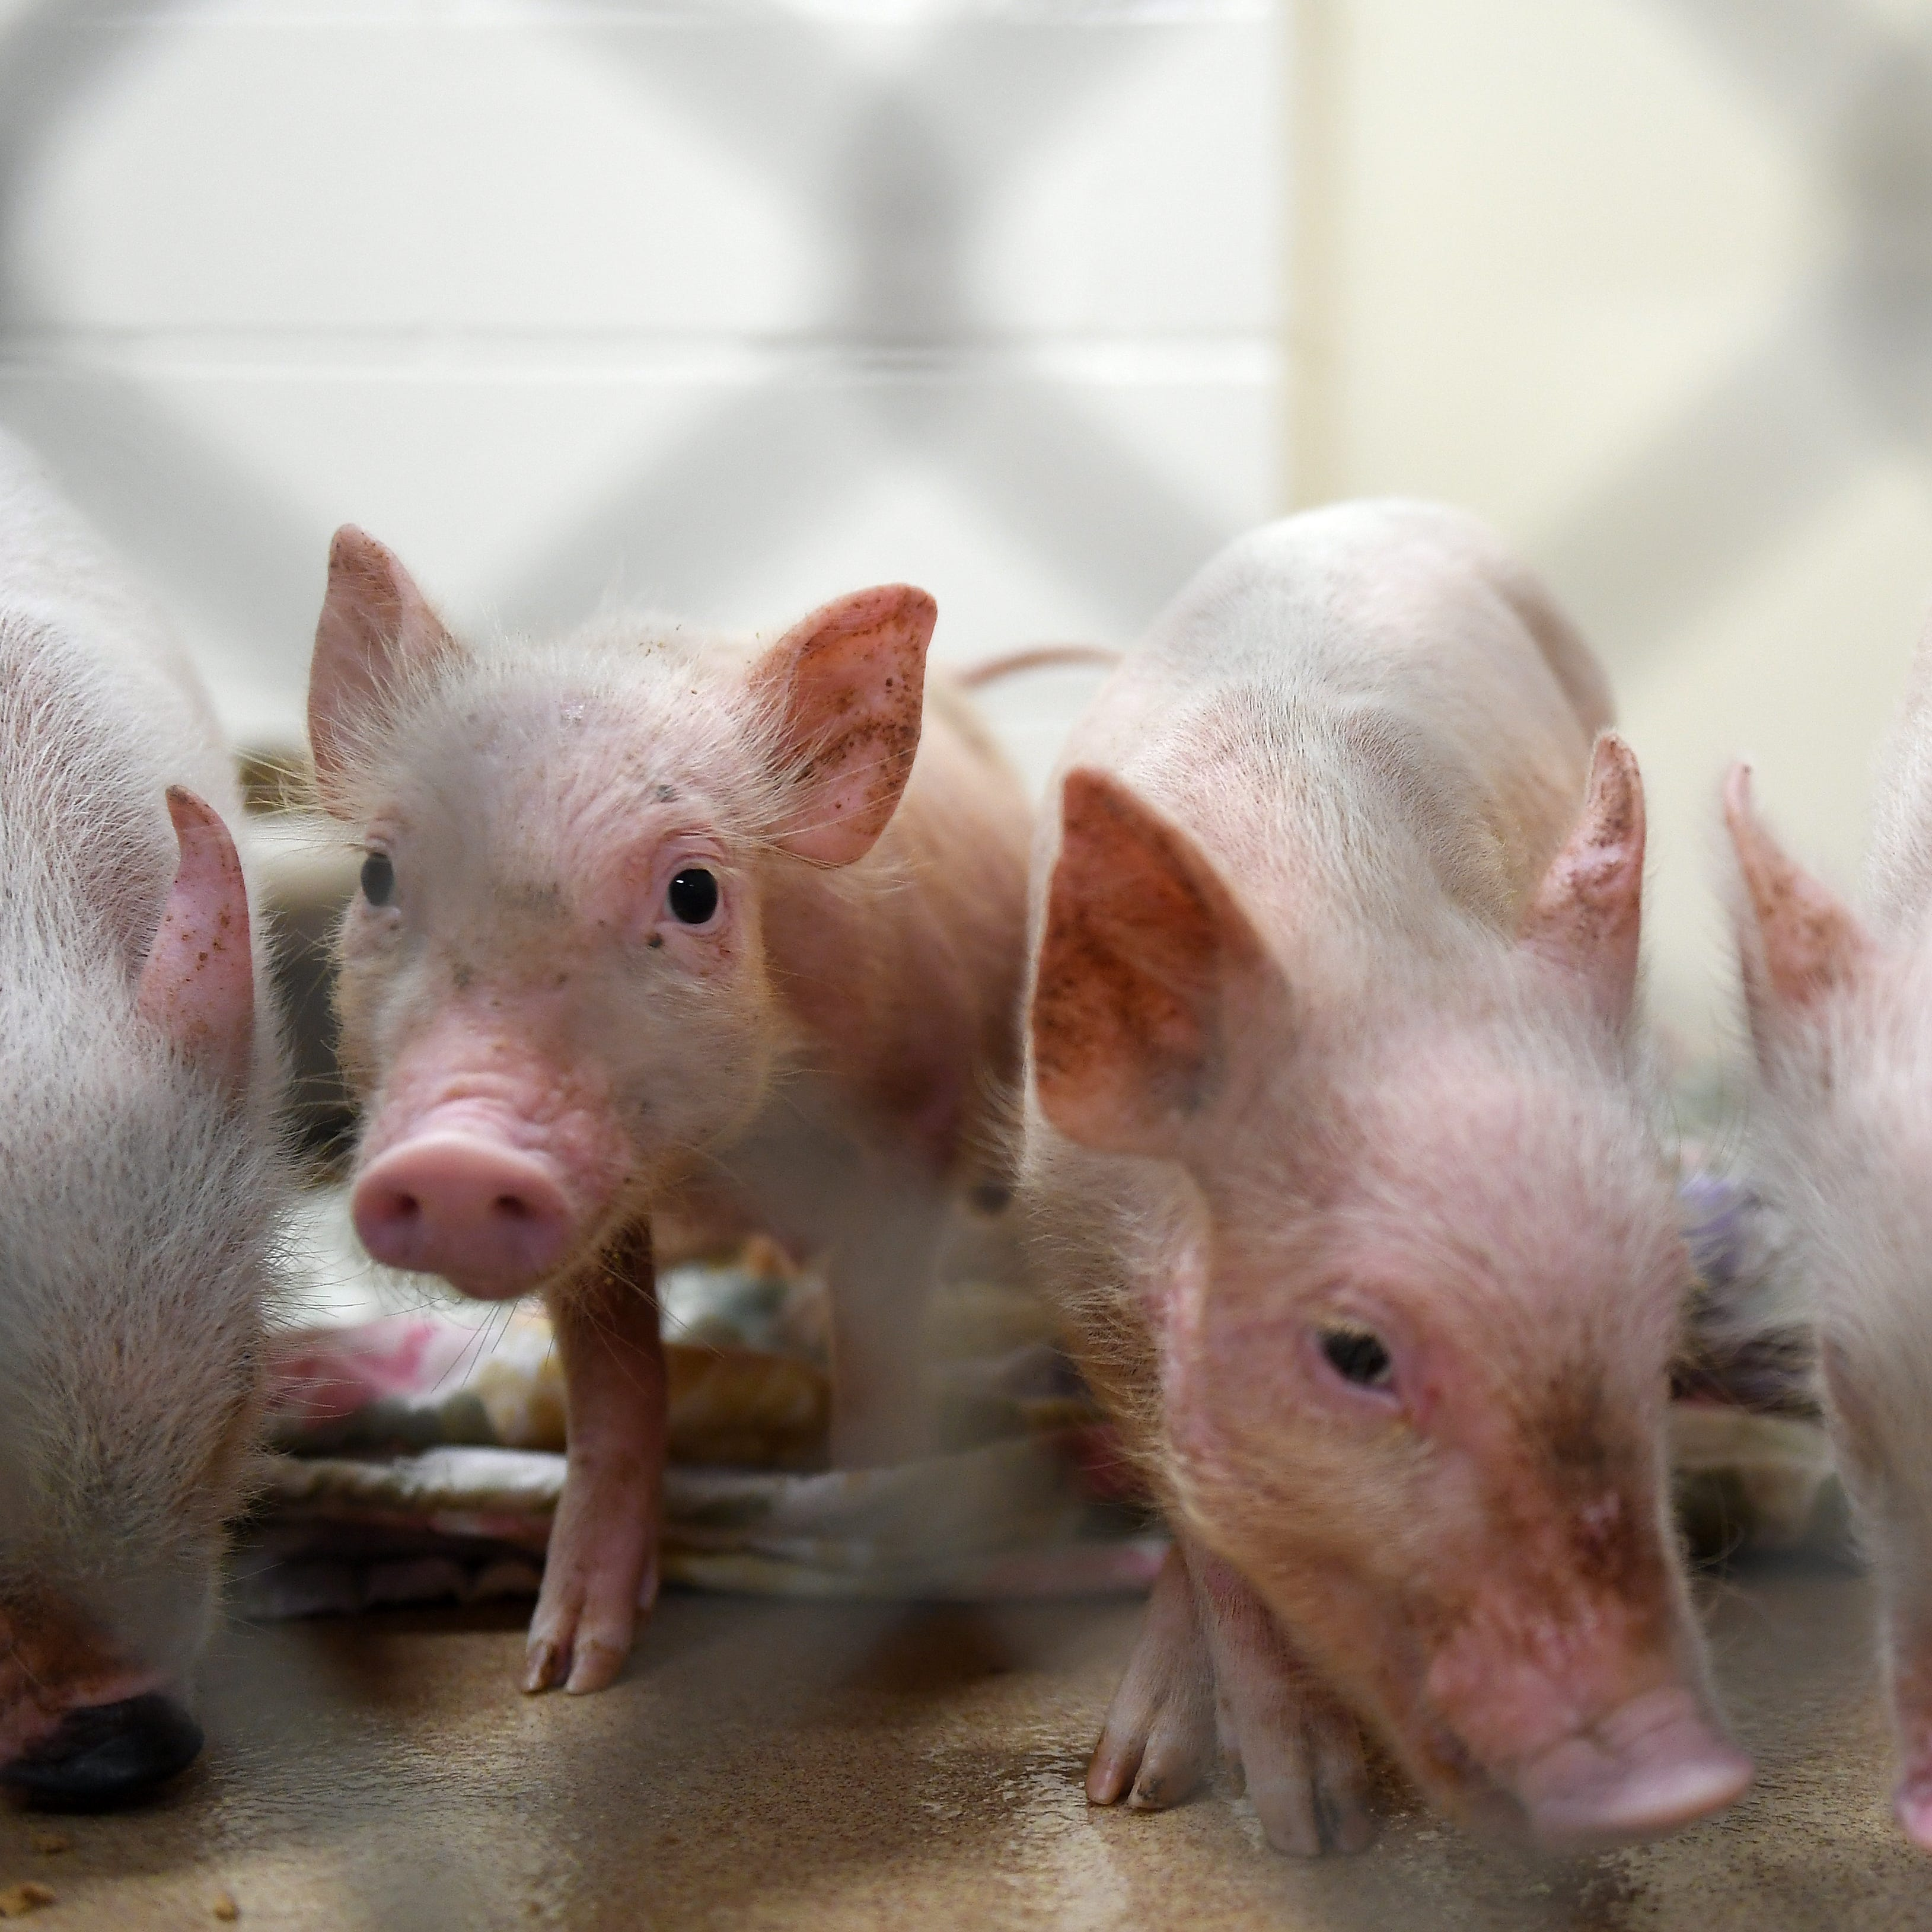 Pig problem: Rise in barnyard-turned-backyard critters a handful for Humane Society